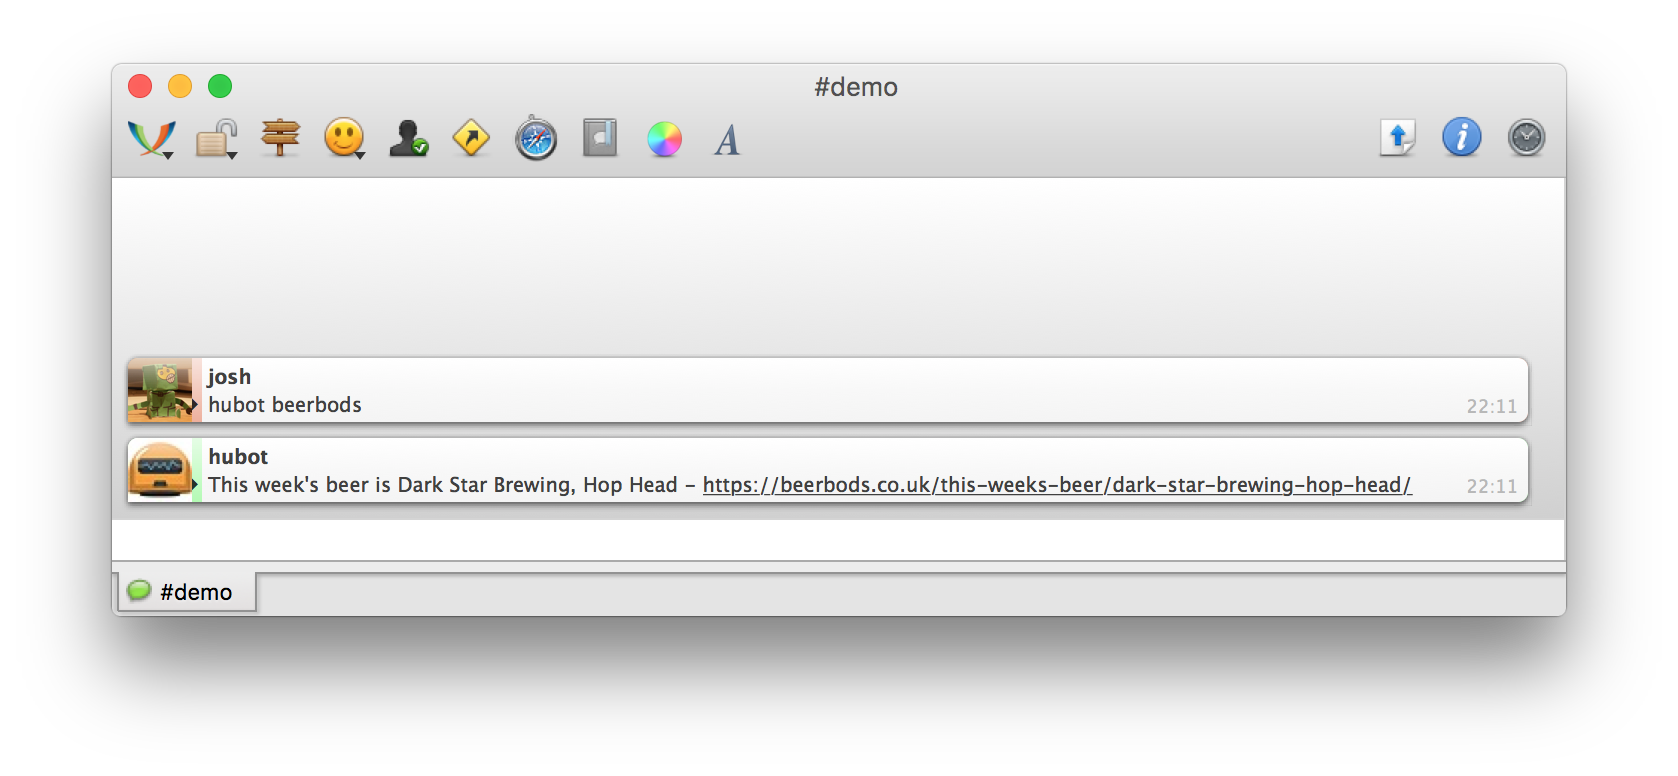 Preview in irc/xmpp